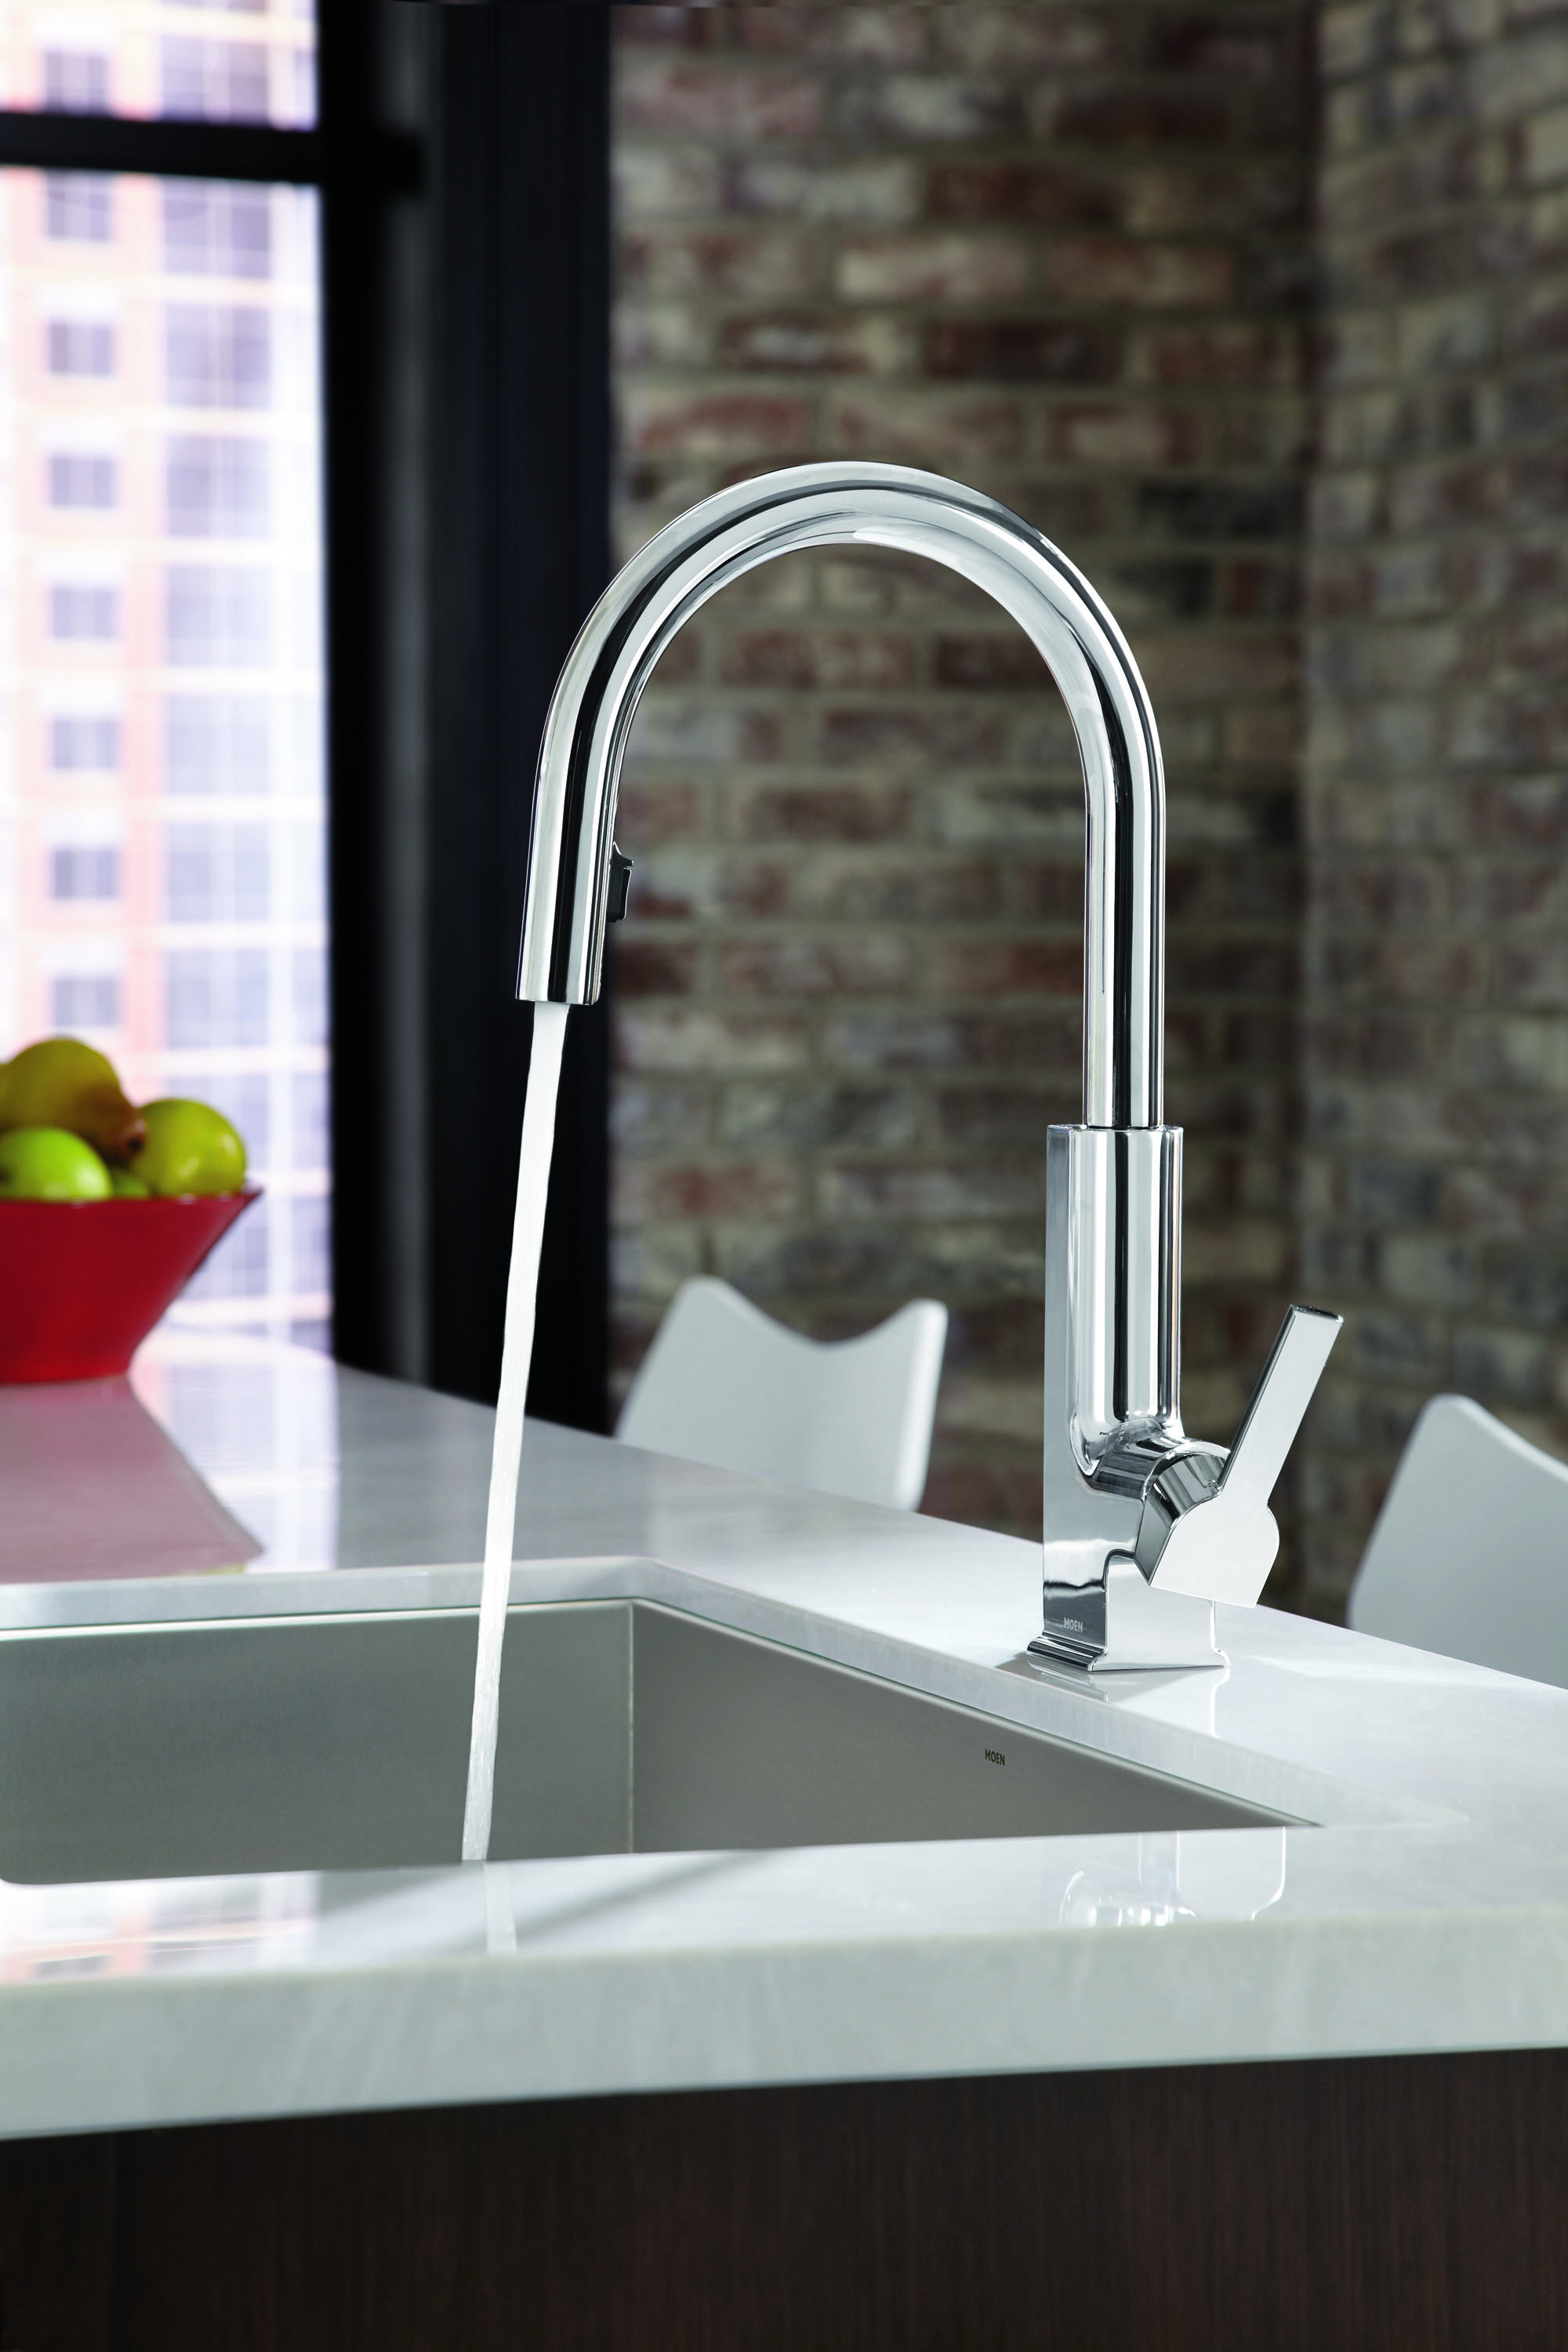 STo(TM) Kitchen Suite From Moen Features Clean, Modern Lines and ...